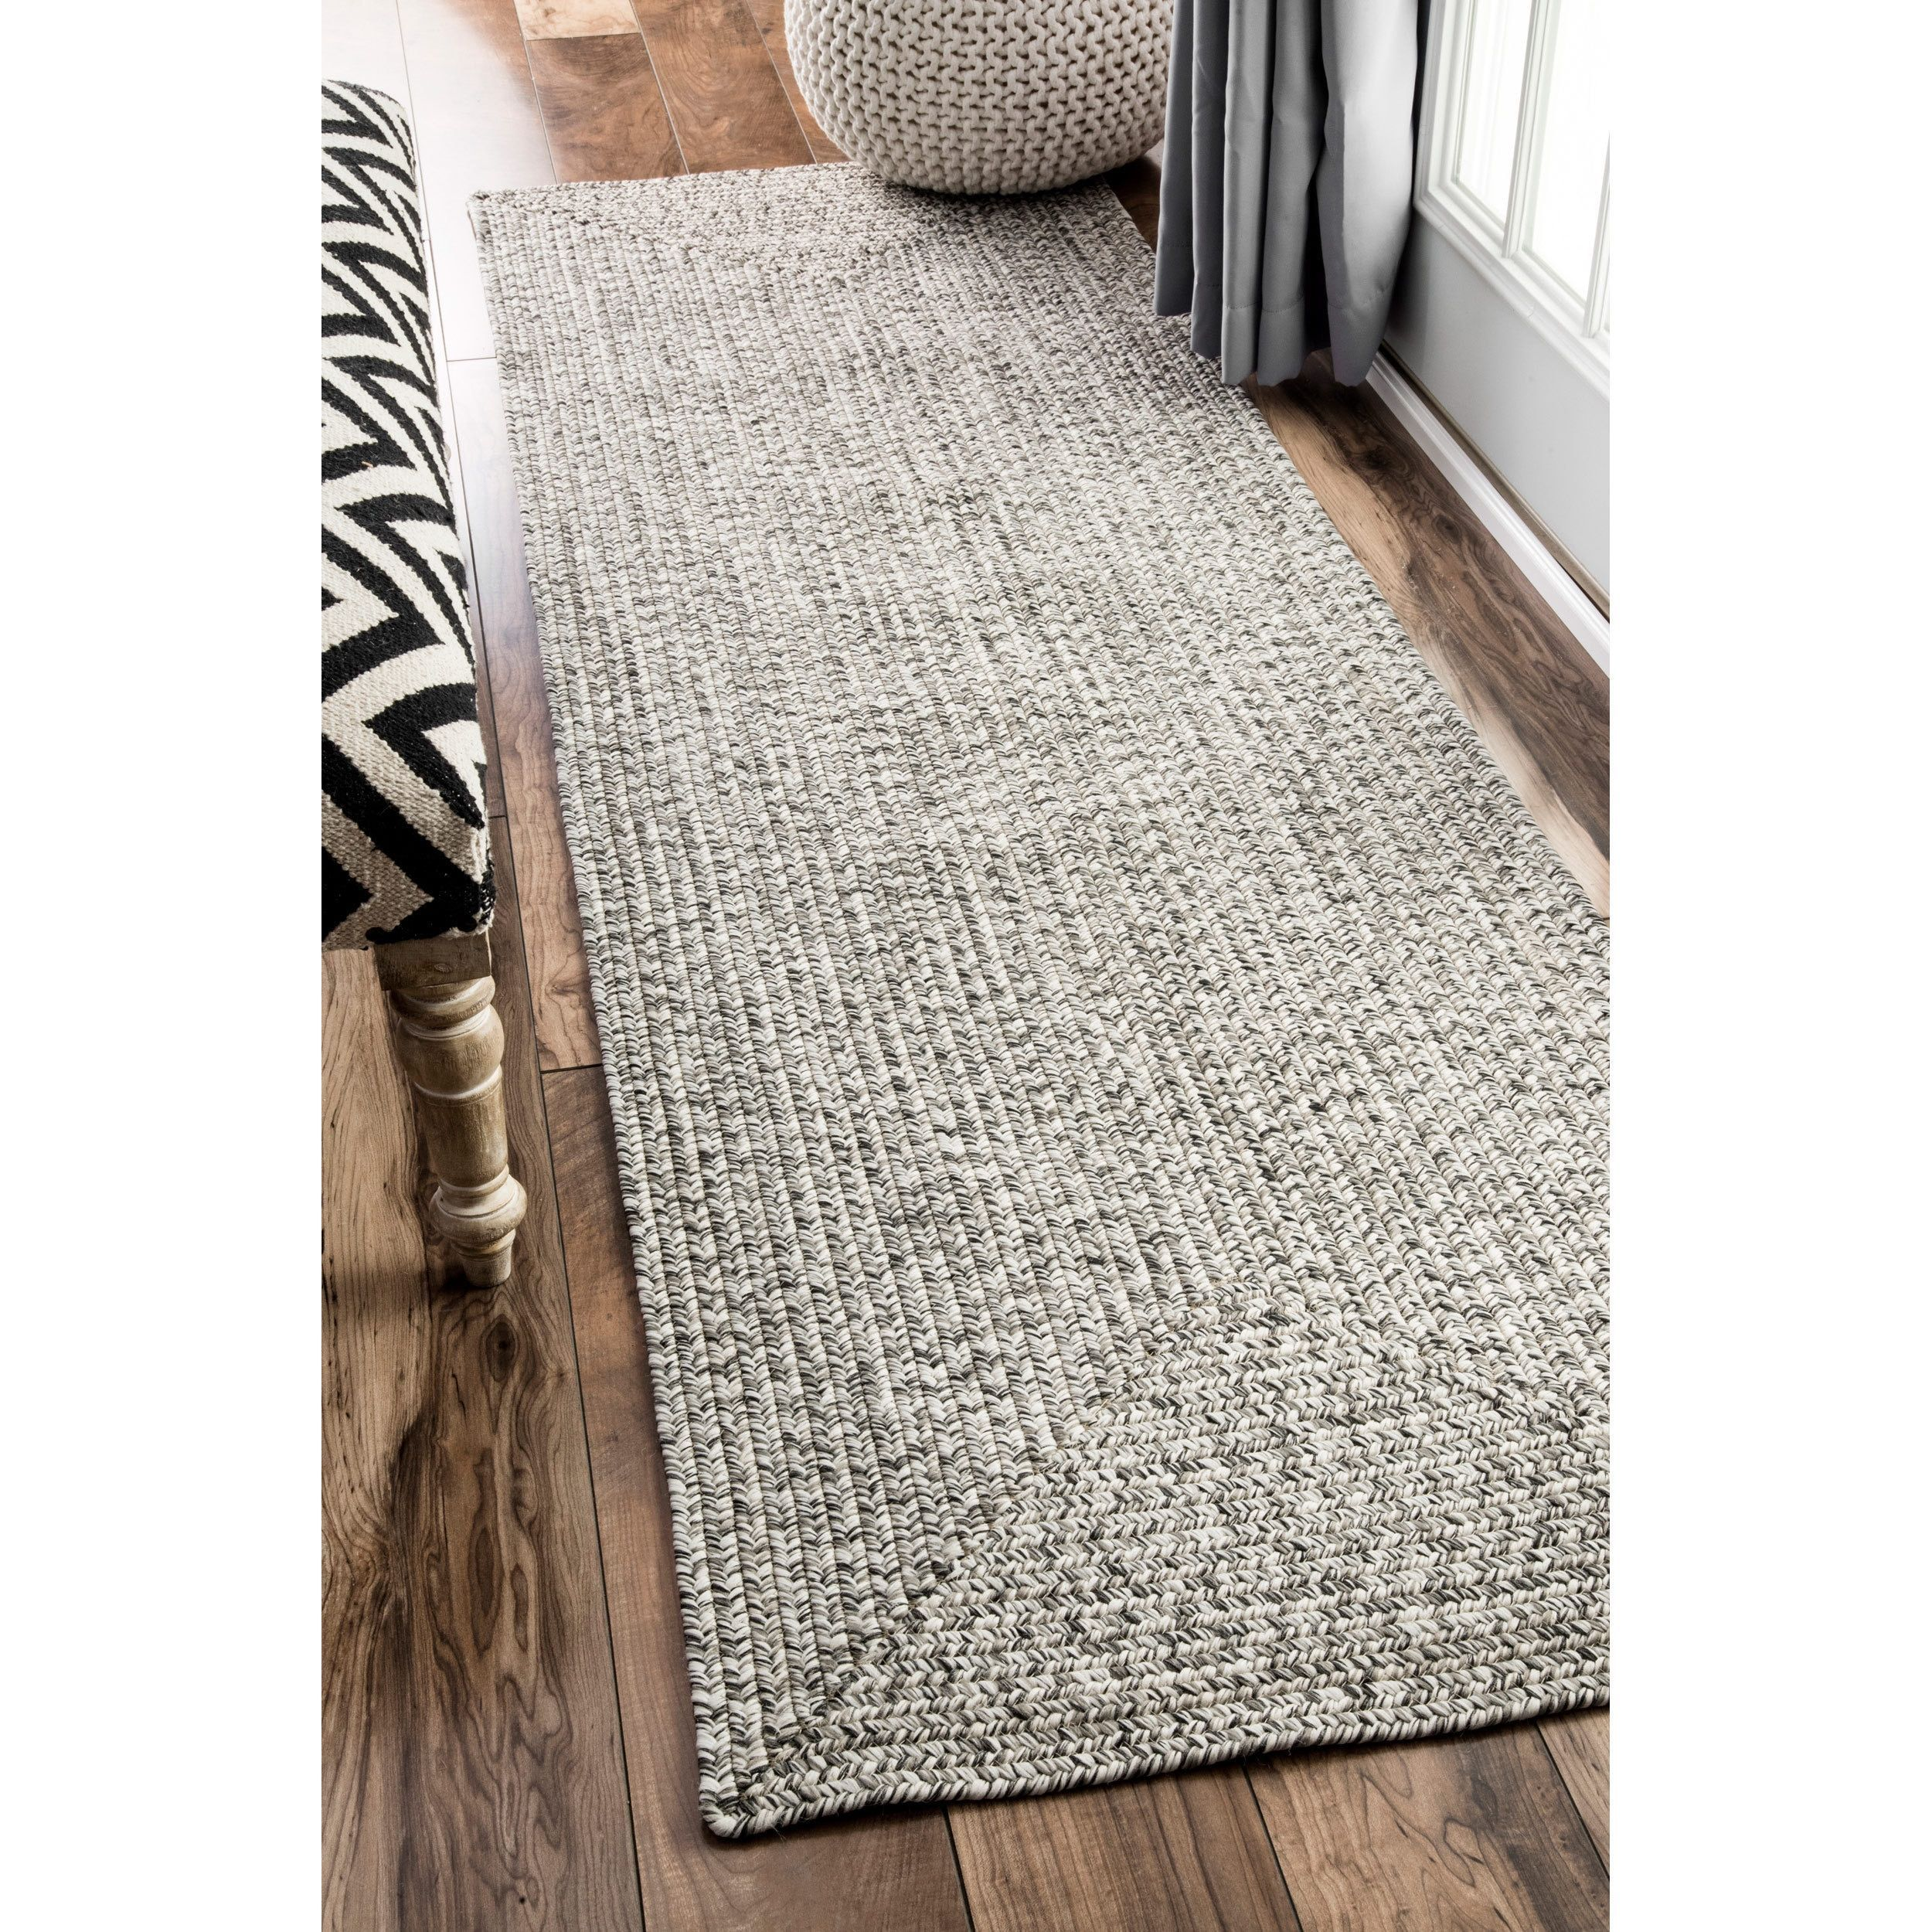 Nuloom Handmade Casual Solid Braided Runner Grey Rug 2 6 X 12